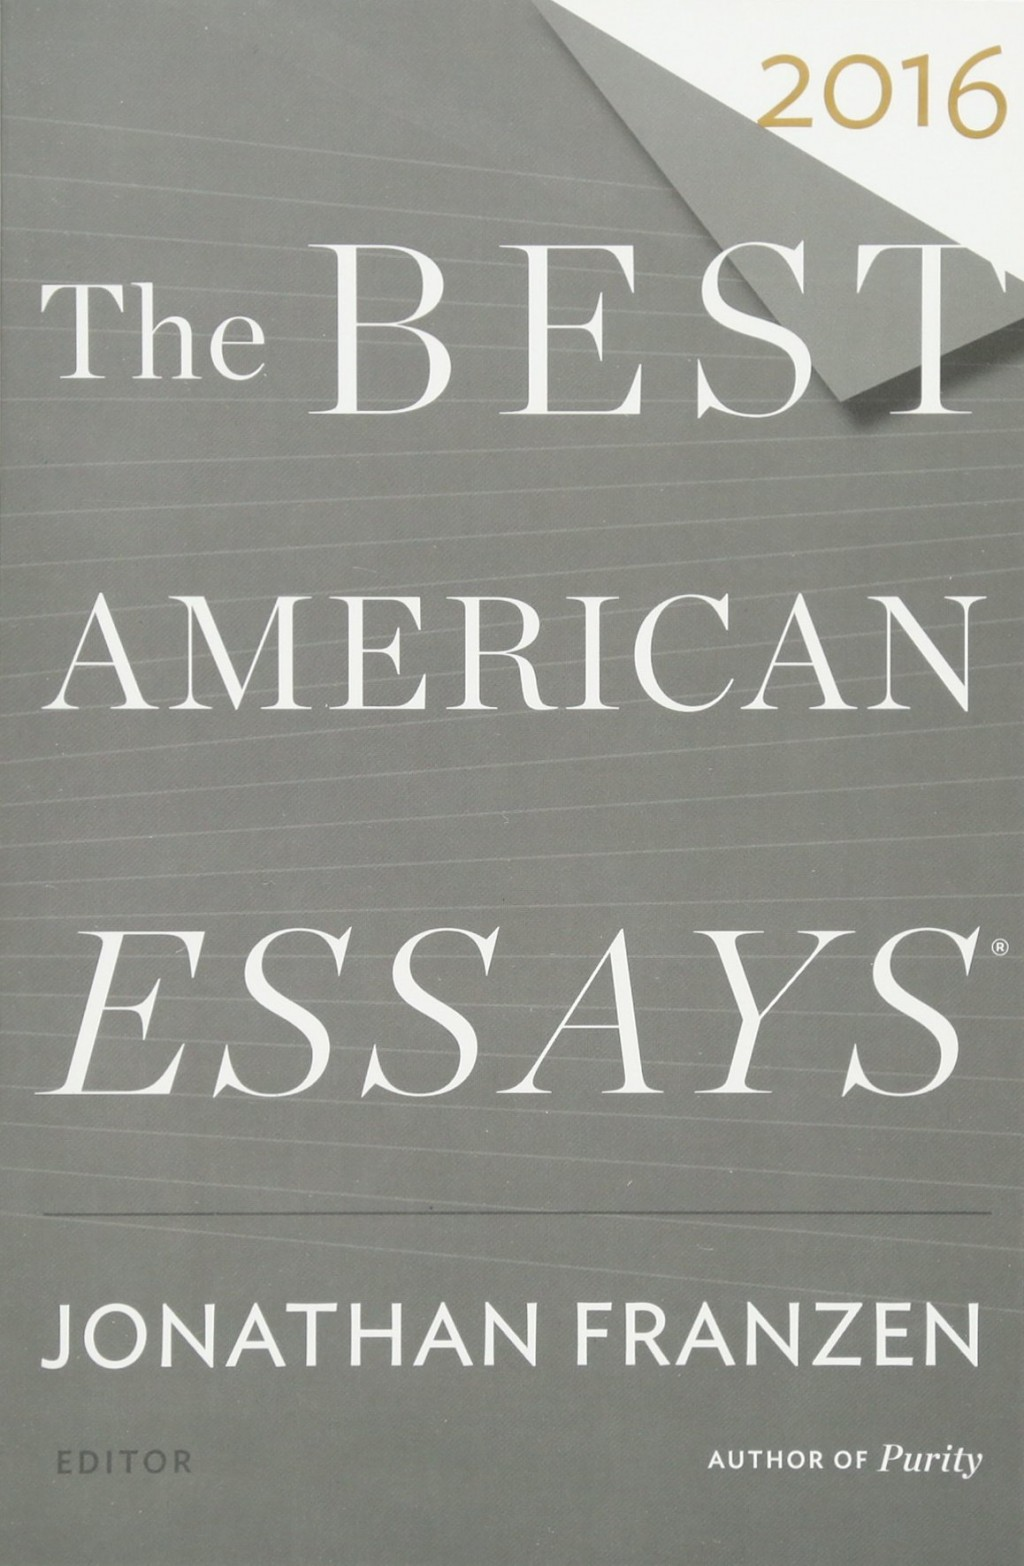 005 The Best American Essays Essay Example Wonderful 2013 Pdf Download Of Century Sparknotes 2017 Large